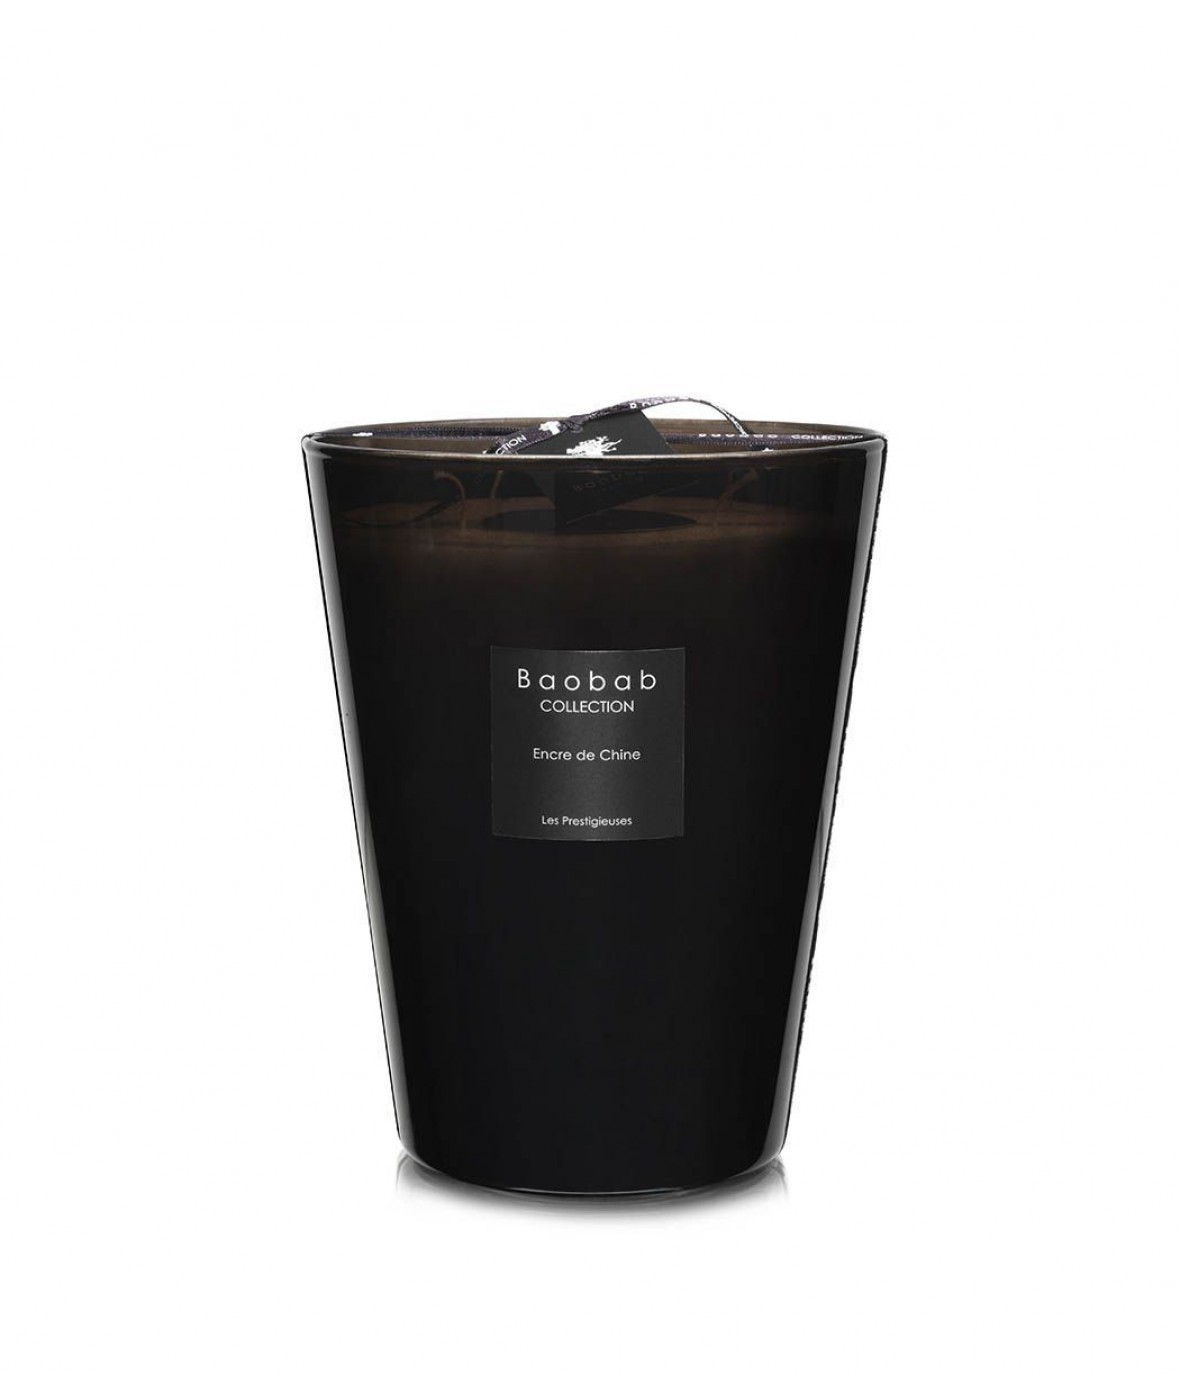 Baobap Scented Candle Encre De Chine (Extra Large)